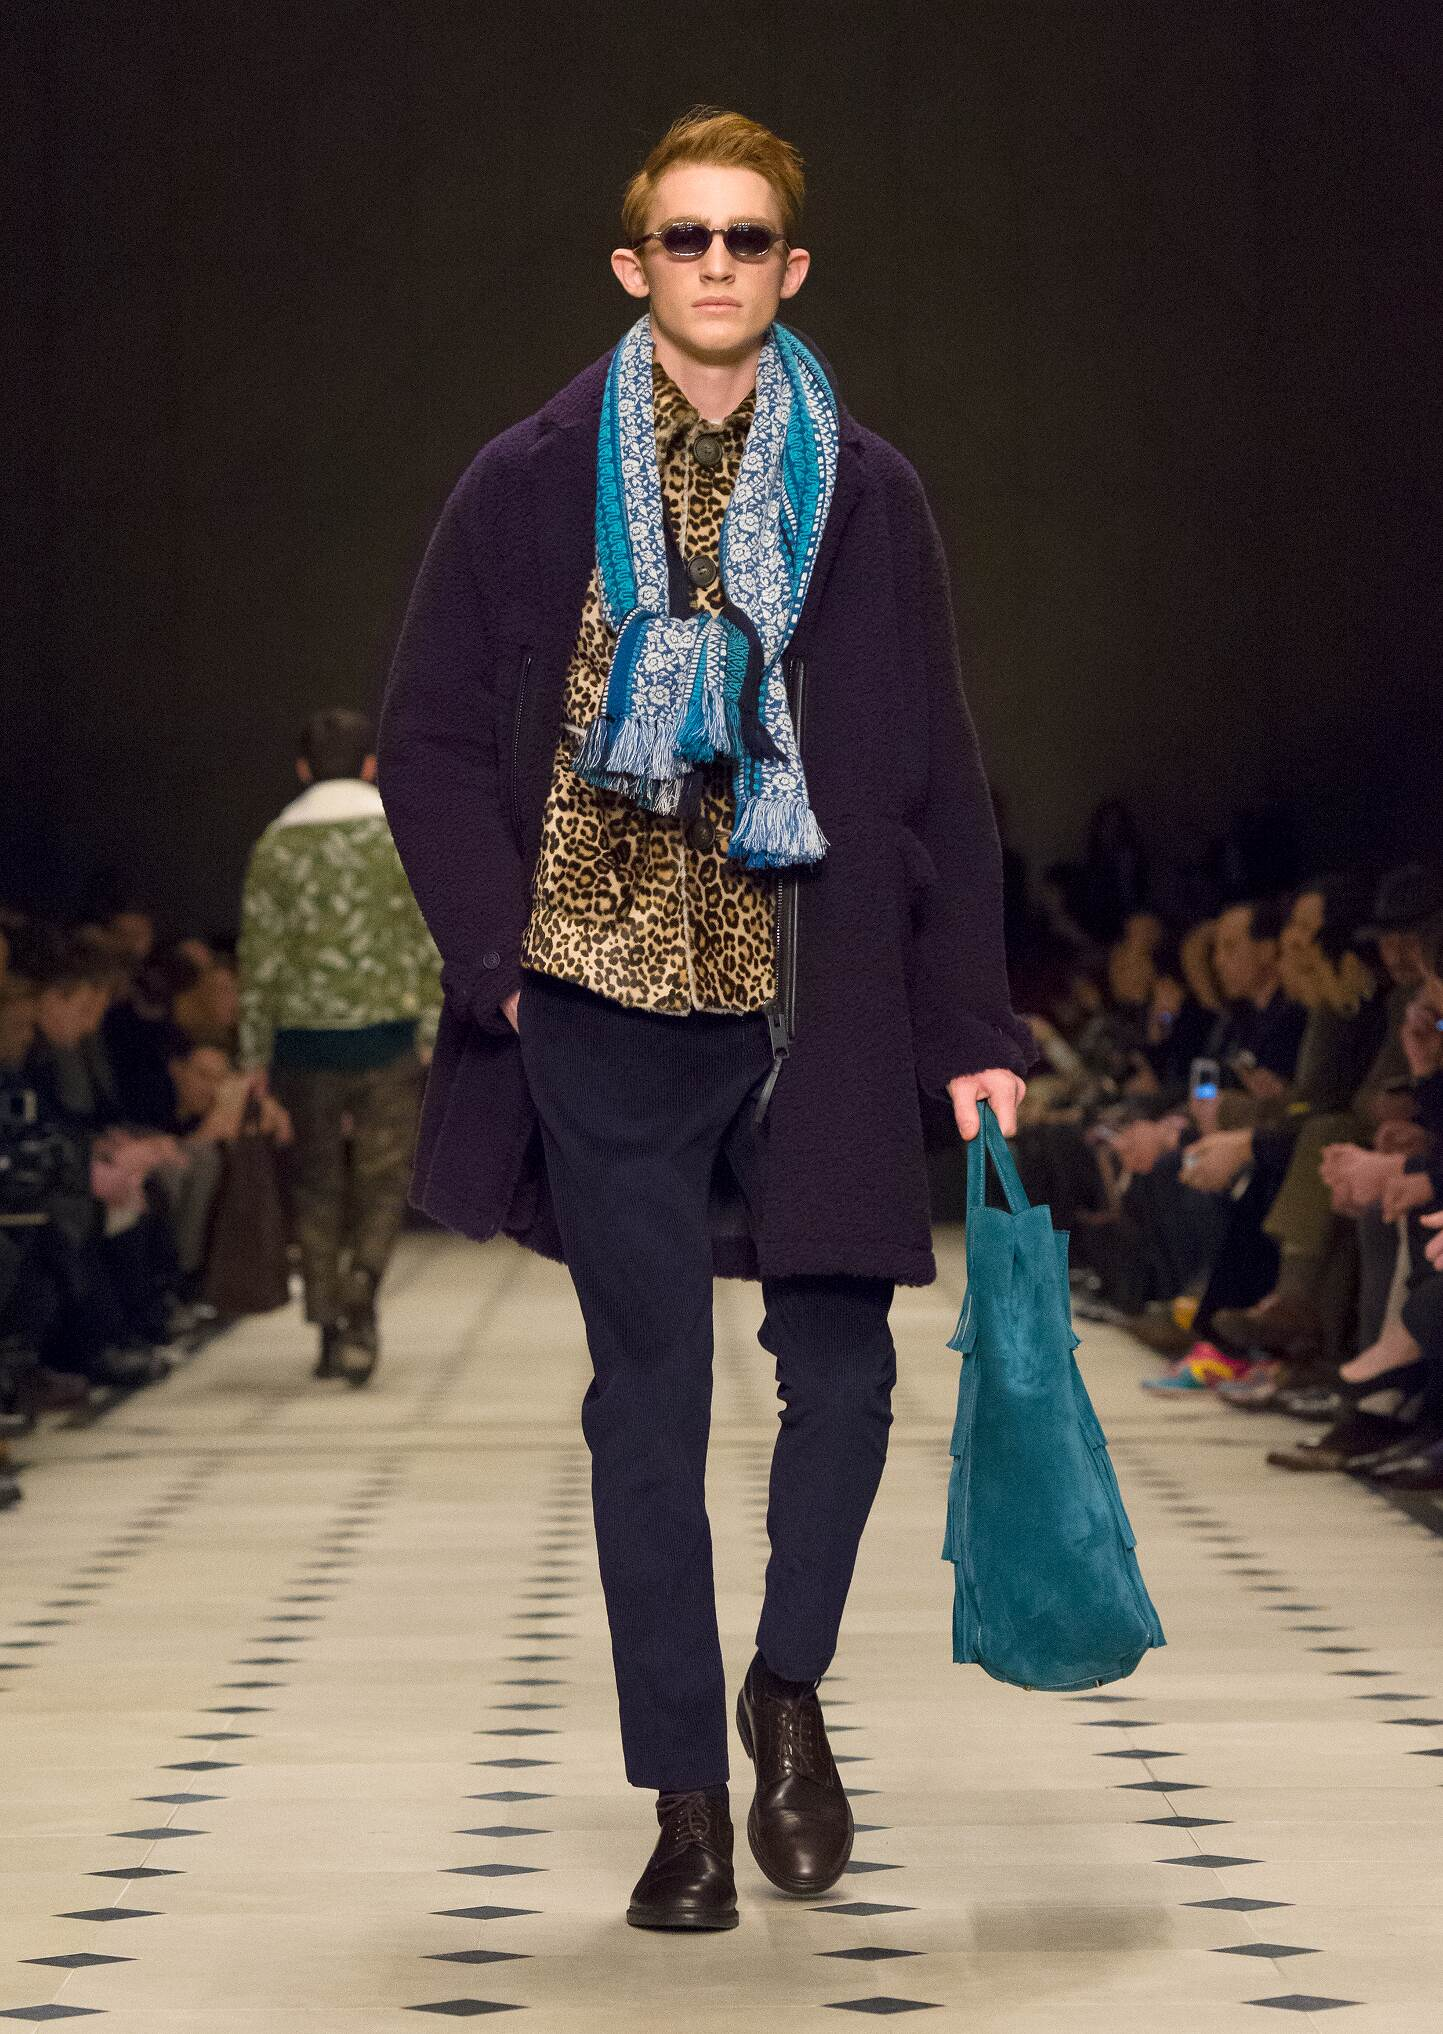 Burberry Prorsum Fall 2015 Catwalk